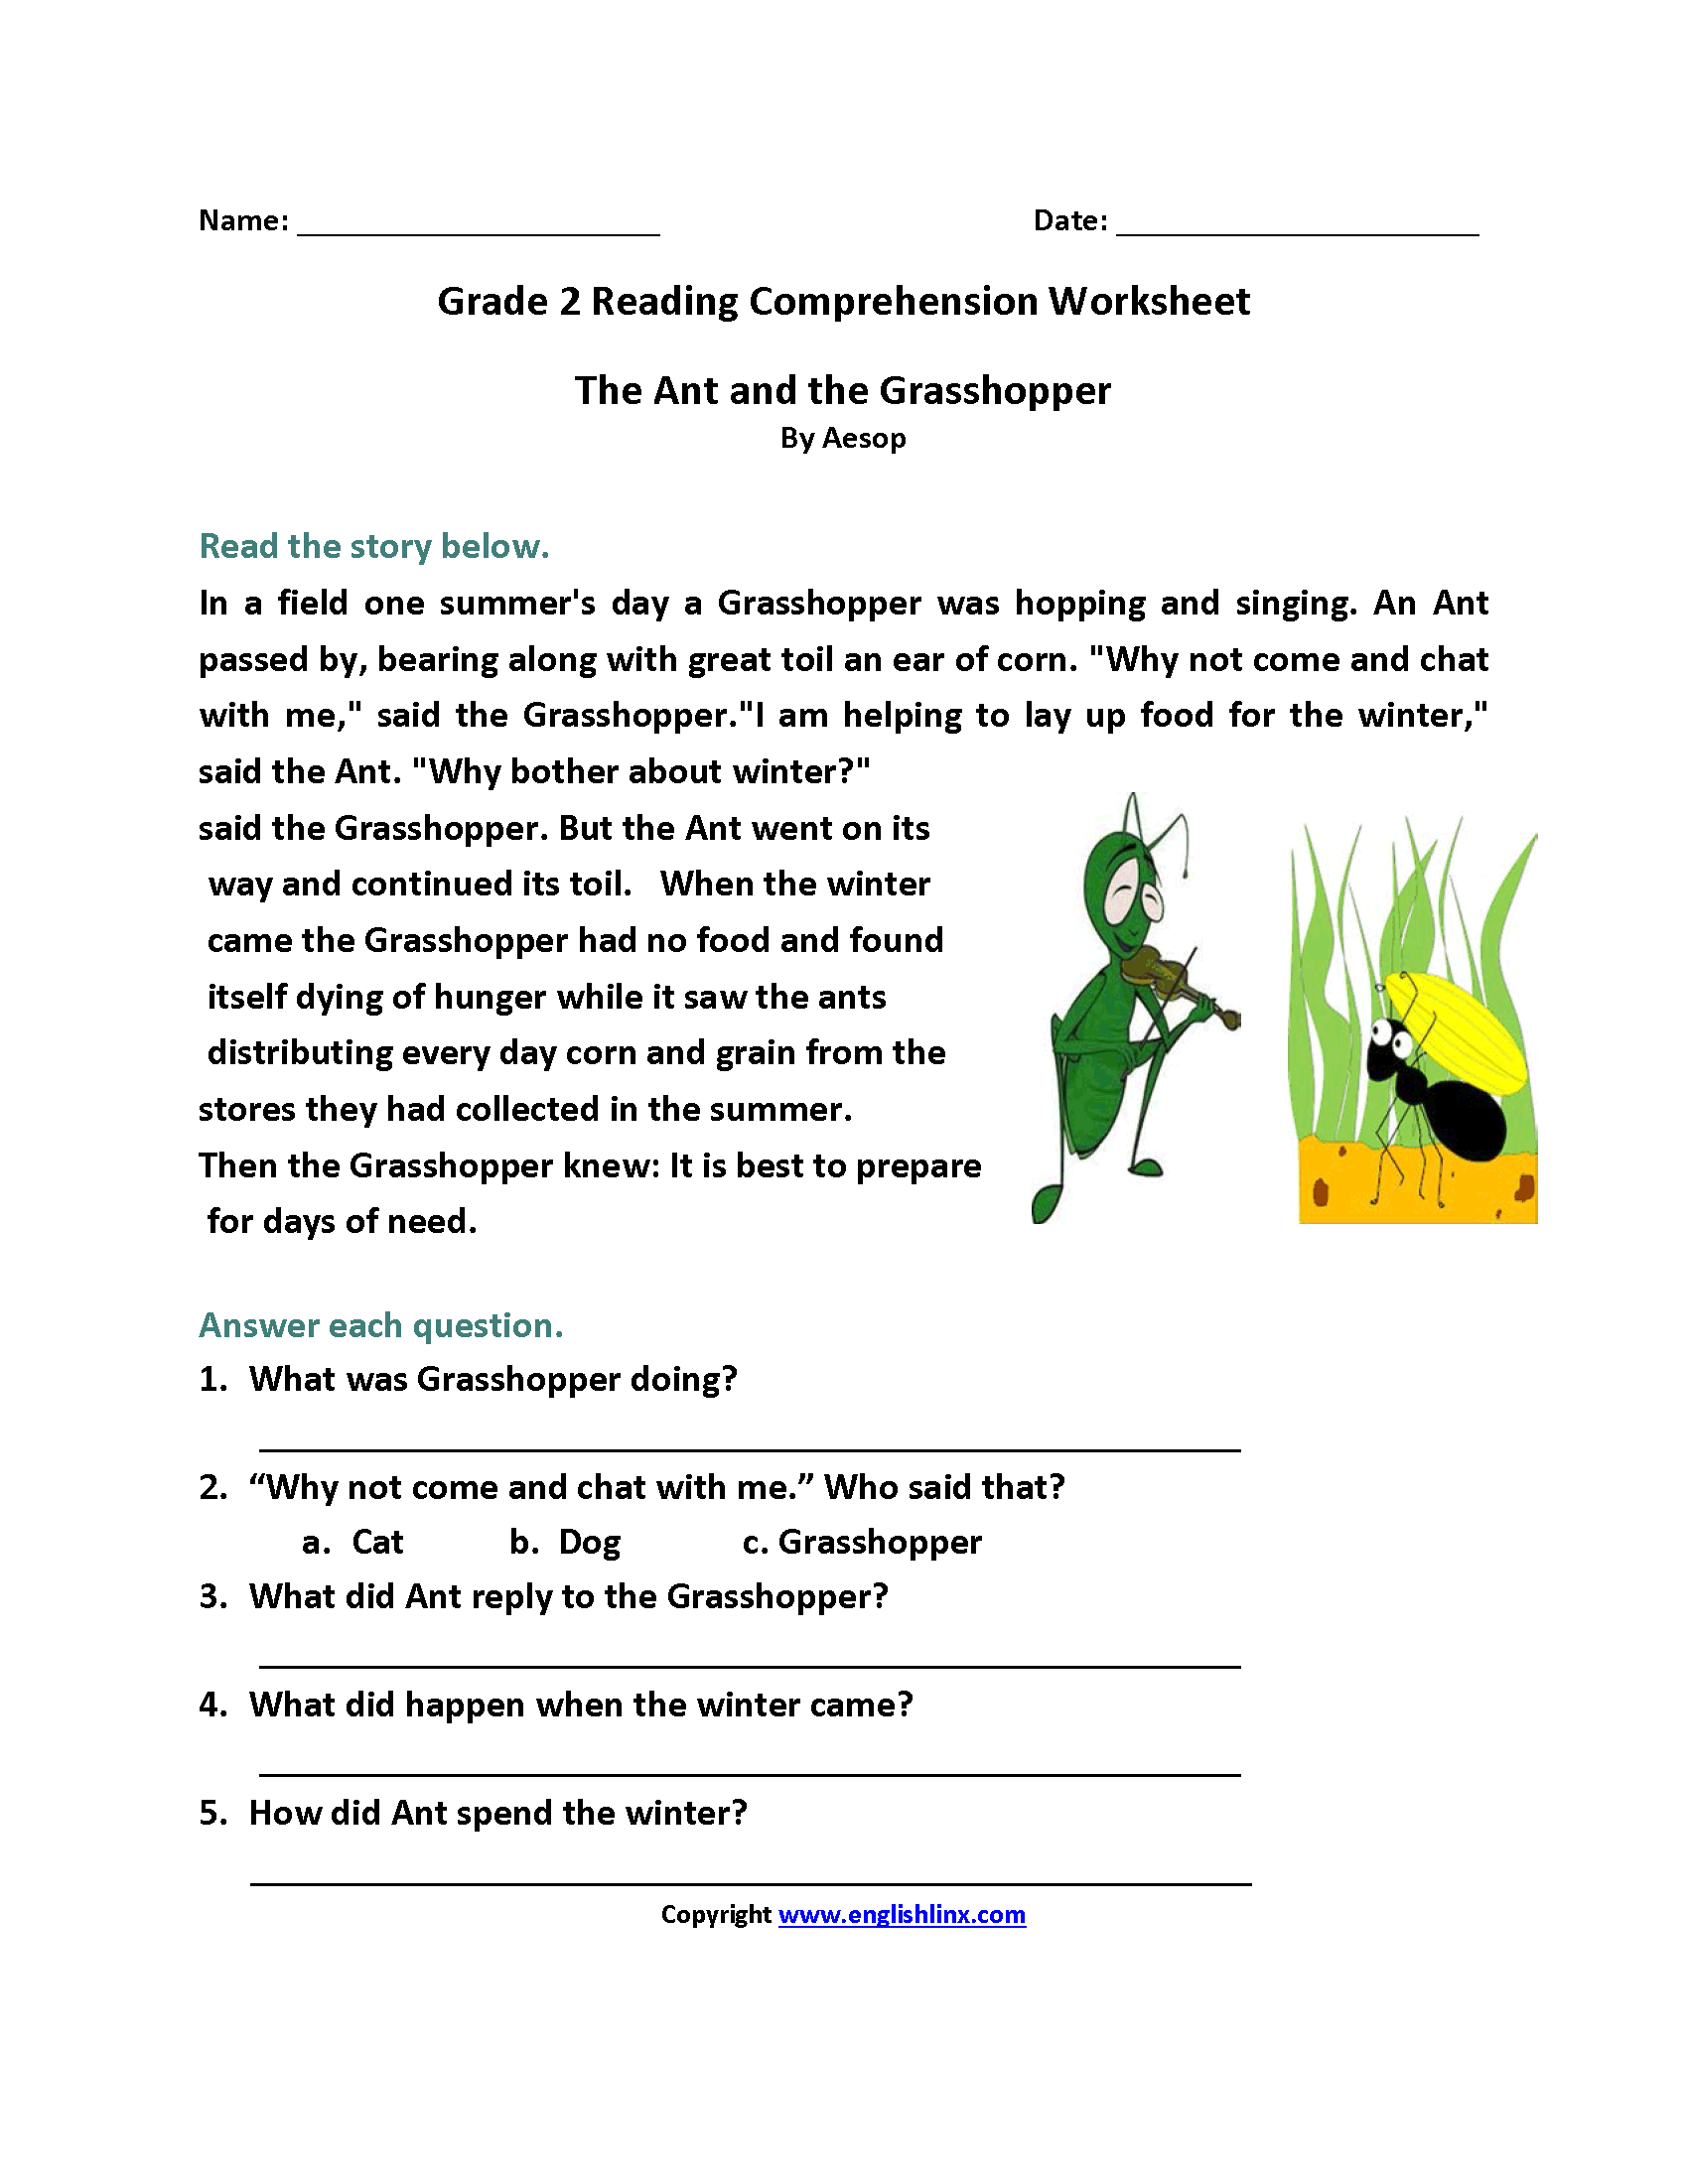 in addition Free Printable  prehension Worksheets Grade 2 For Reading moreover free reading  prehension worksheets grade 2 – r furthermore  in addition Resources   Reading   Worksheets together with  in addition beginning  prehension worksheets – kenkowoman info besides Reading Worksheets   Second Grade Reading Worksheets furthermore  together with  in addition First Grade Reading  prehension Worksheets   Reading  prehension besides  besides Grade 2 Reading  prehension Worksheets 2nd Grade Questions – Math besides Free  prehension worksheets for grade 2 further Grade 2 Reading  prehension Worksheets   Lobo Black as well . on comprehension worksheets for grade 2